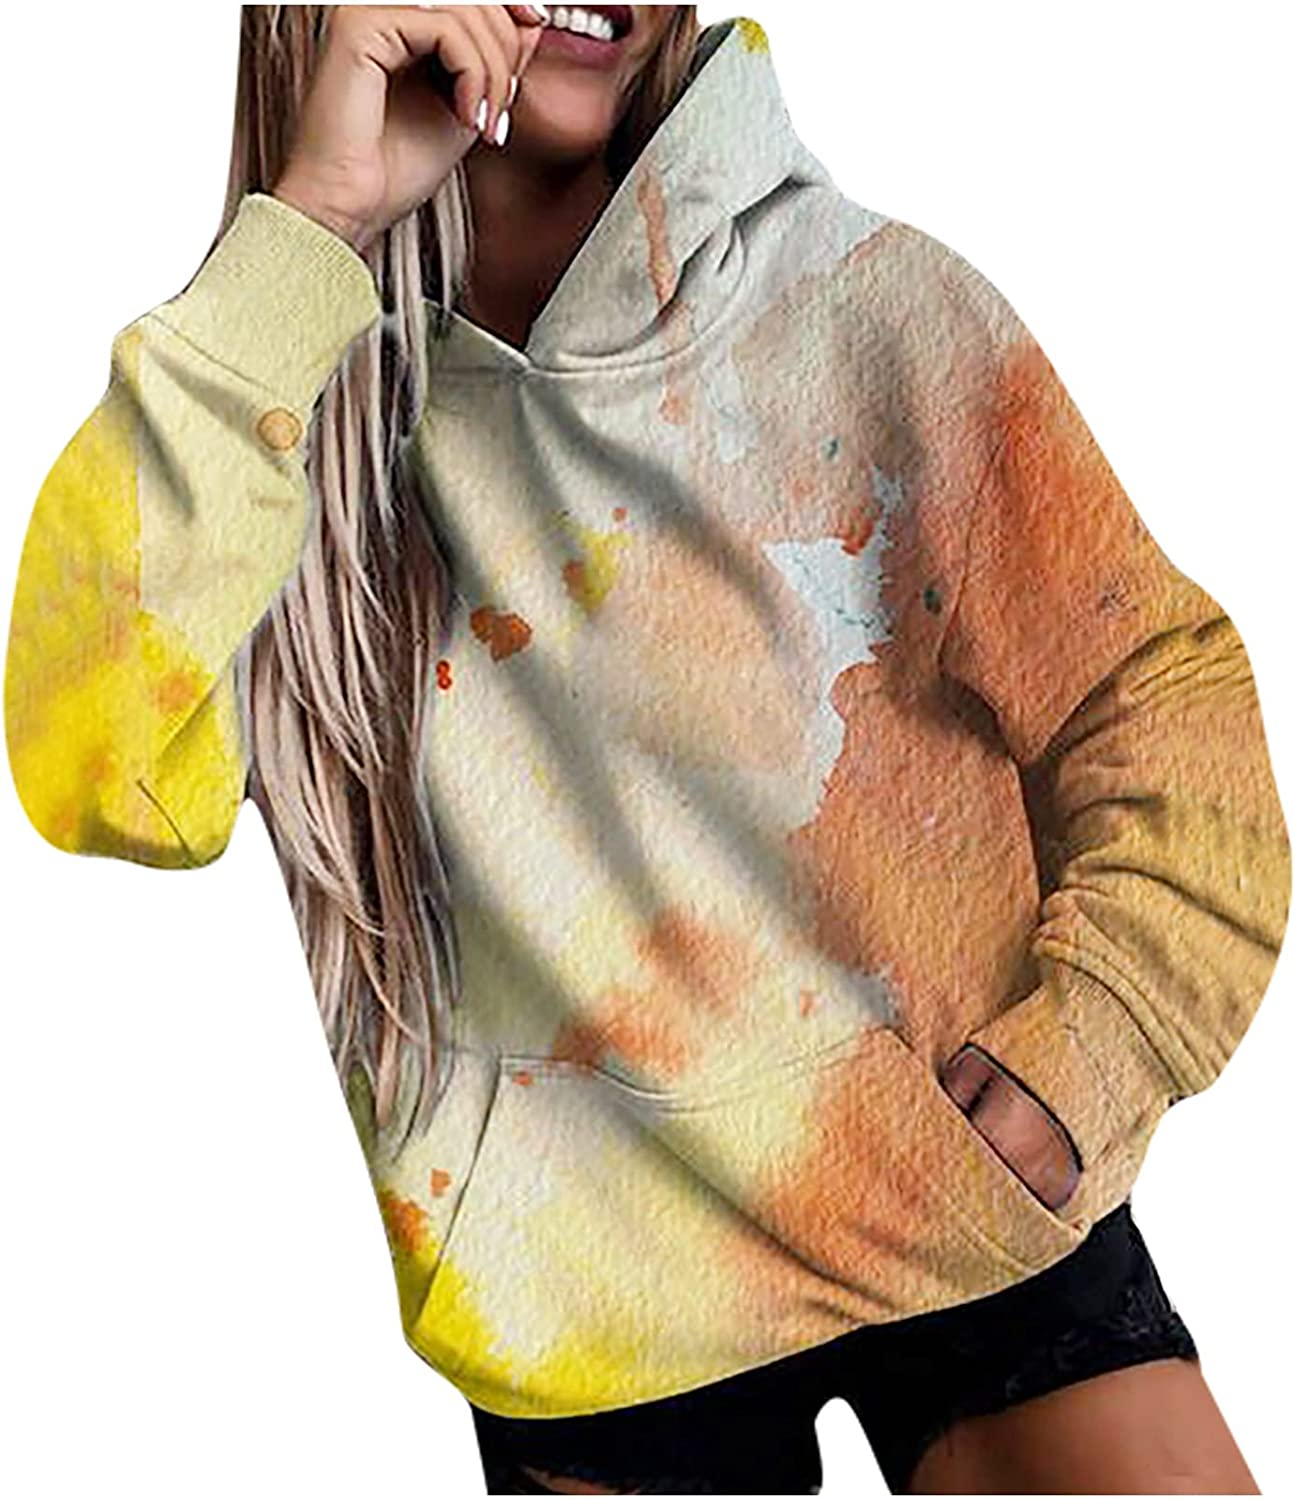 Women Tie-dye Color Block Pullover Sweatshirt Long Sleeve Thick Print Hooded Plus Size Tops with Pockets